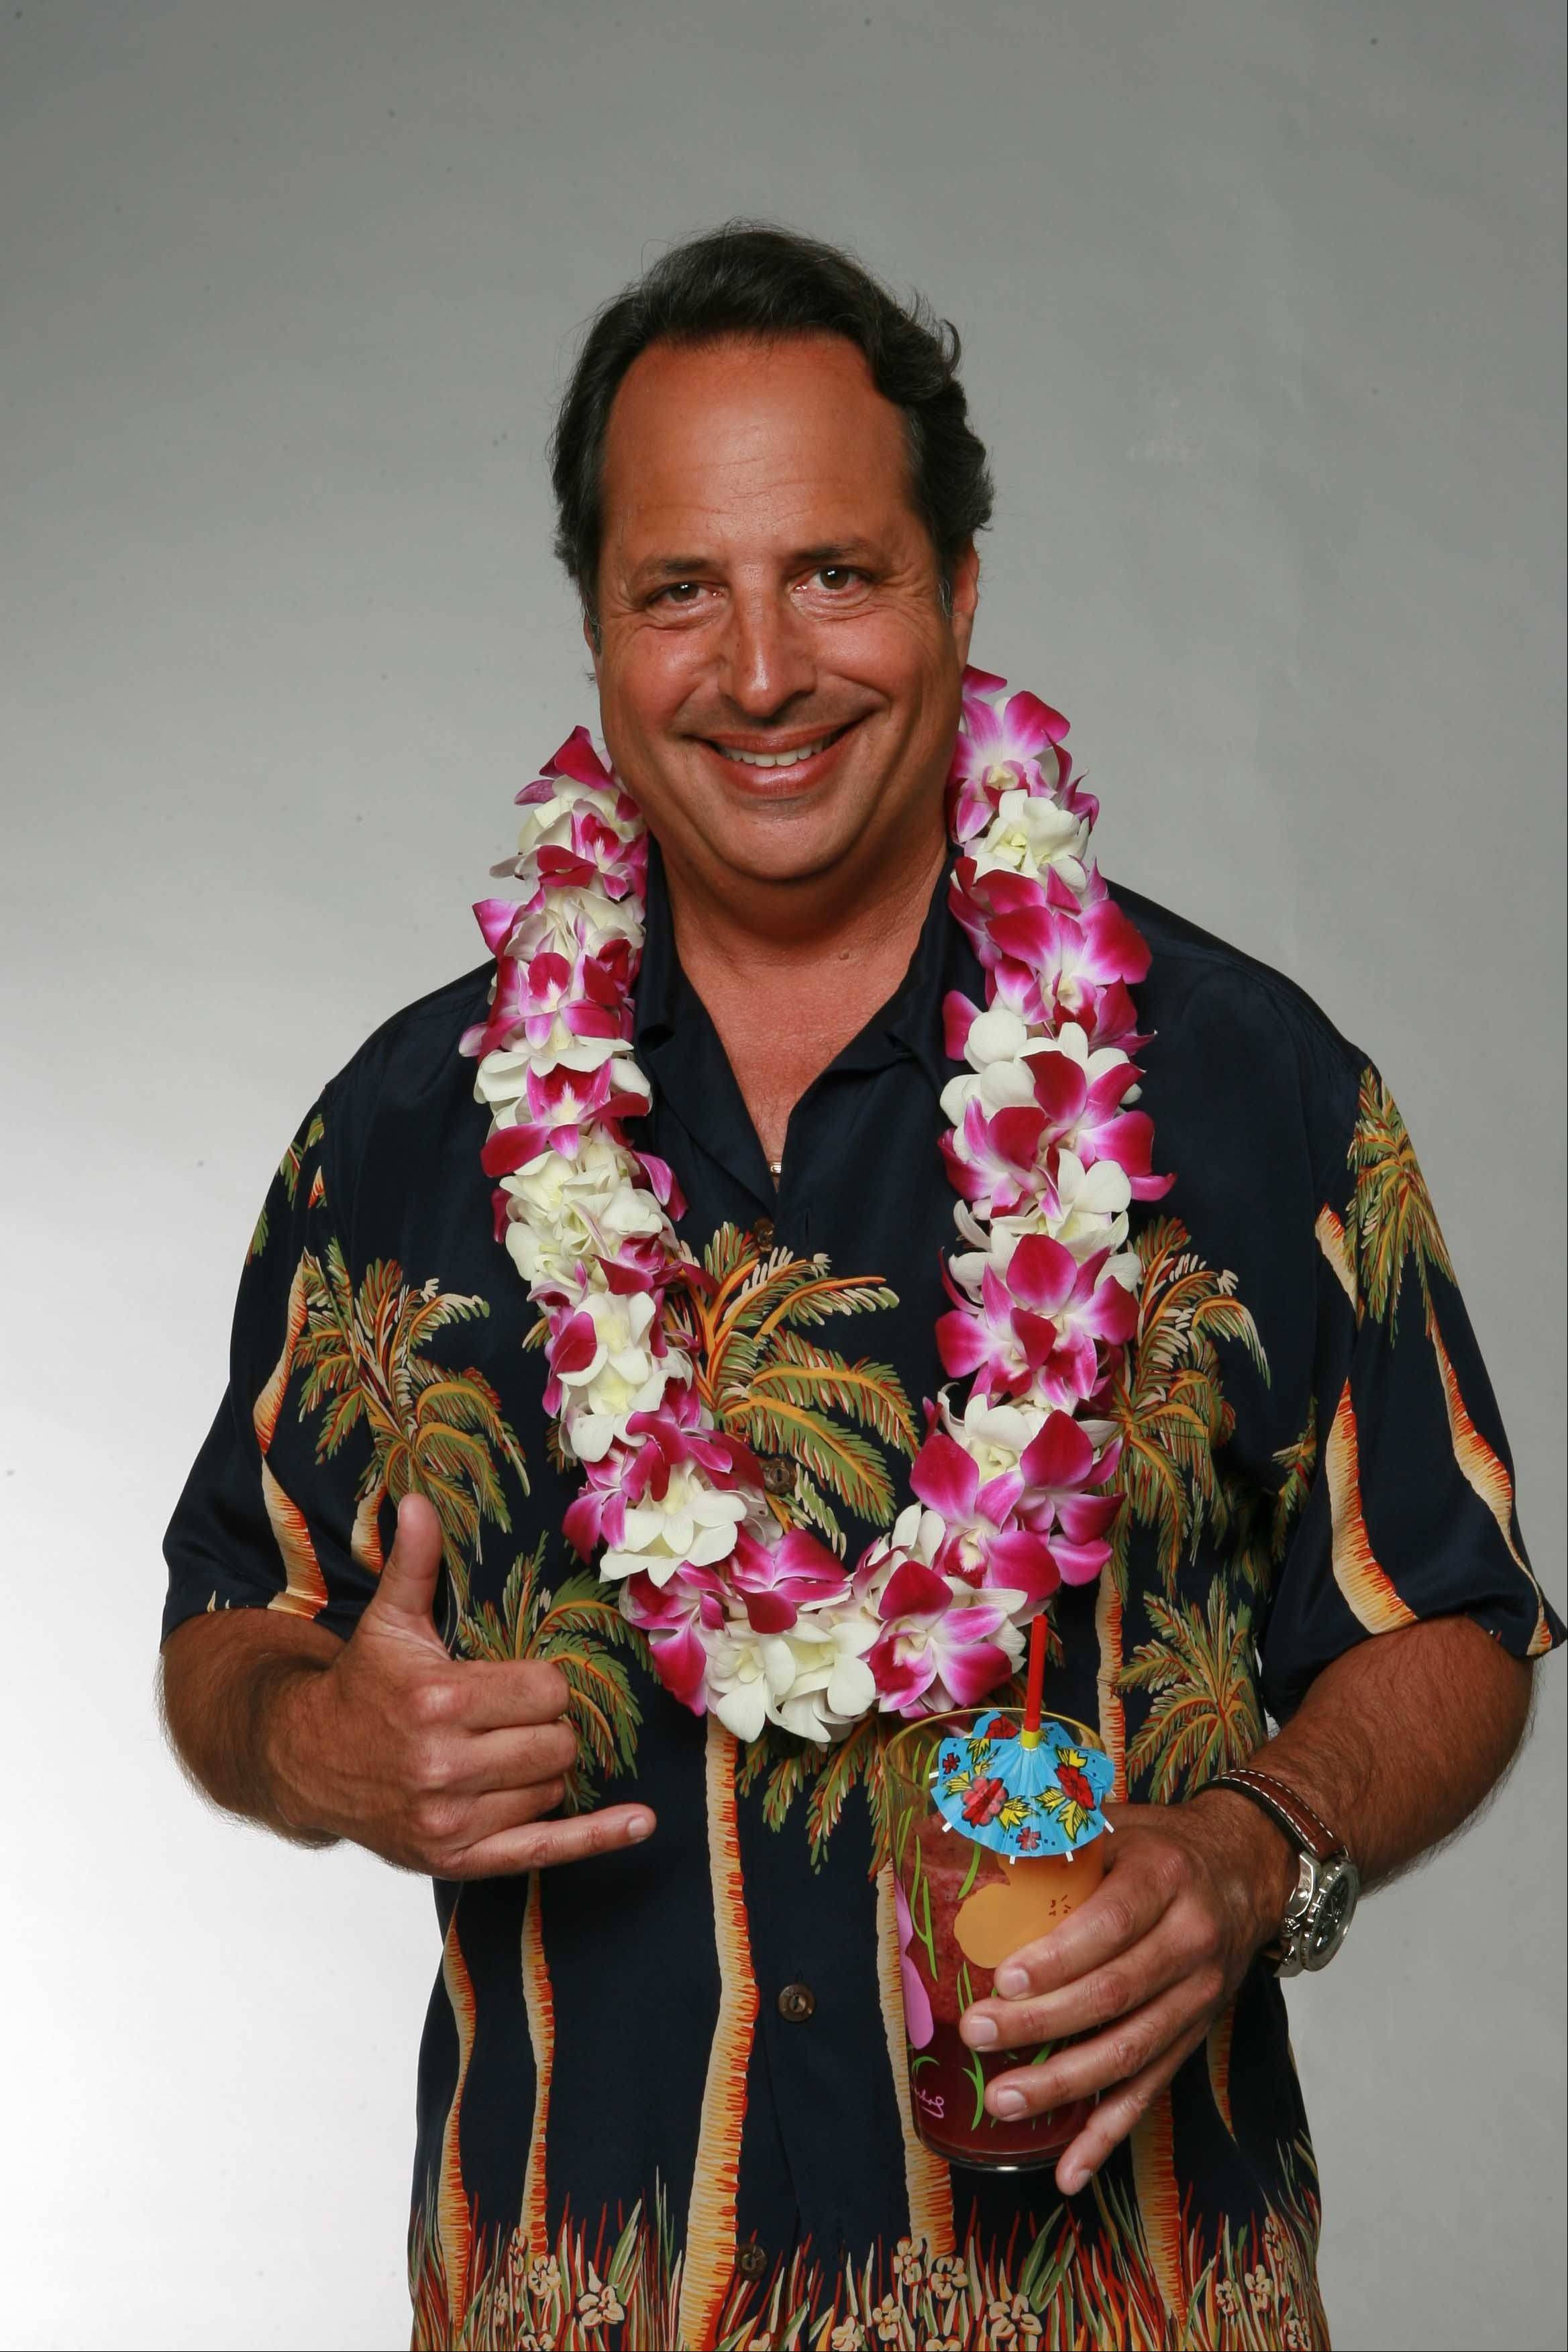 Comedian Jon Lovitz performs at the Improv Comedy Showcase in Schaumburg from Friday, Aug. 31, to Sunday, Sept. 2.